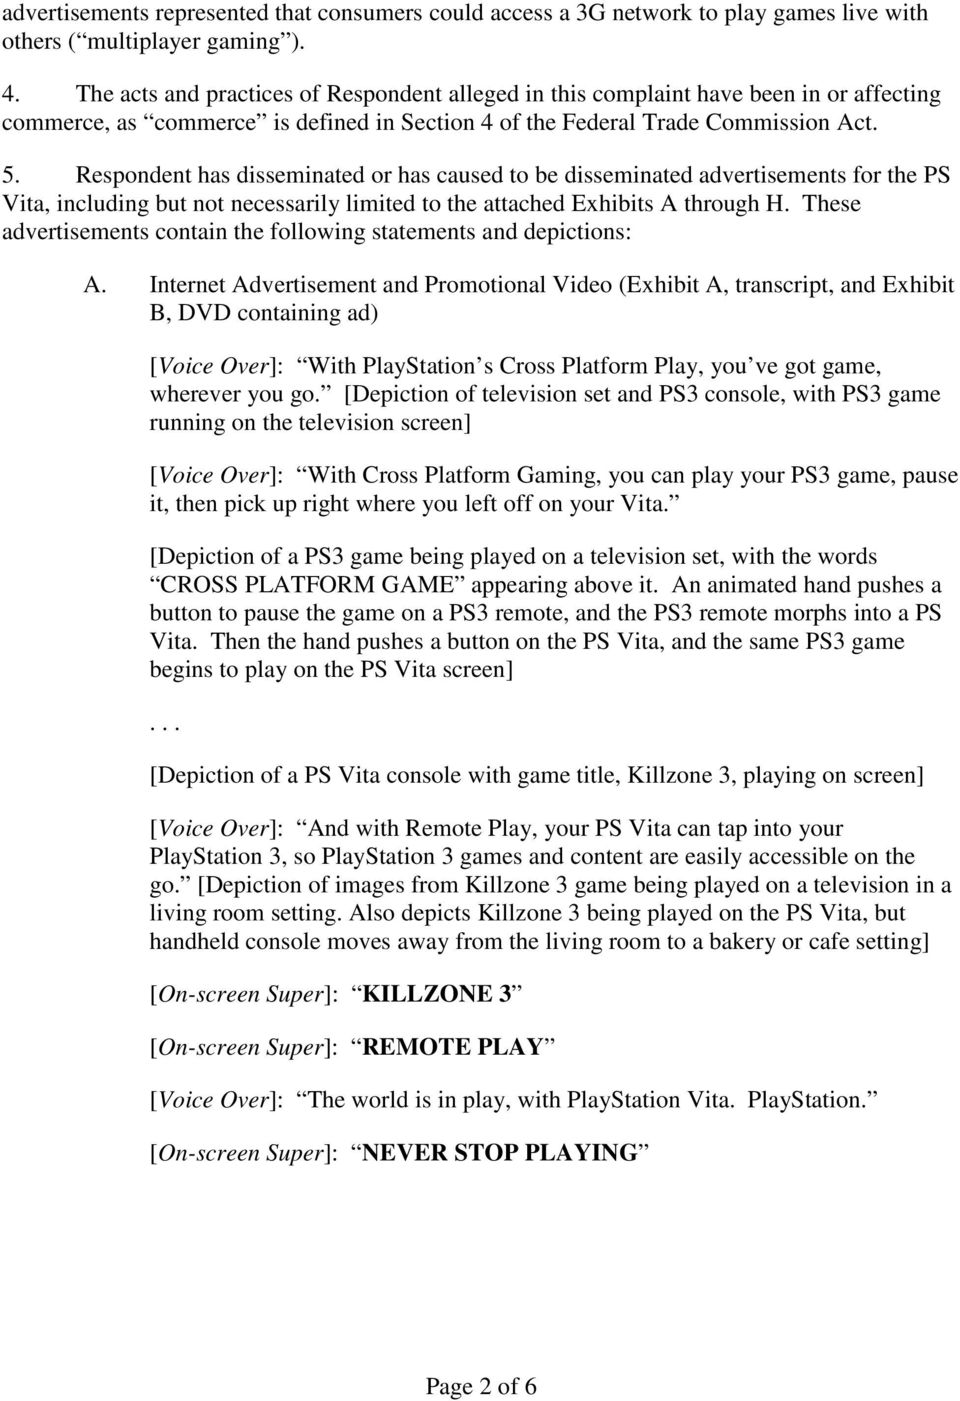 Respondent has disseminated or has caused to be disseminated advertisements for the PS Vita, including but not necessarily limited to the attached Exhibits A through H.